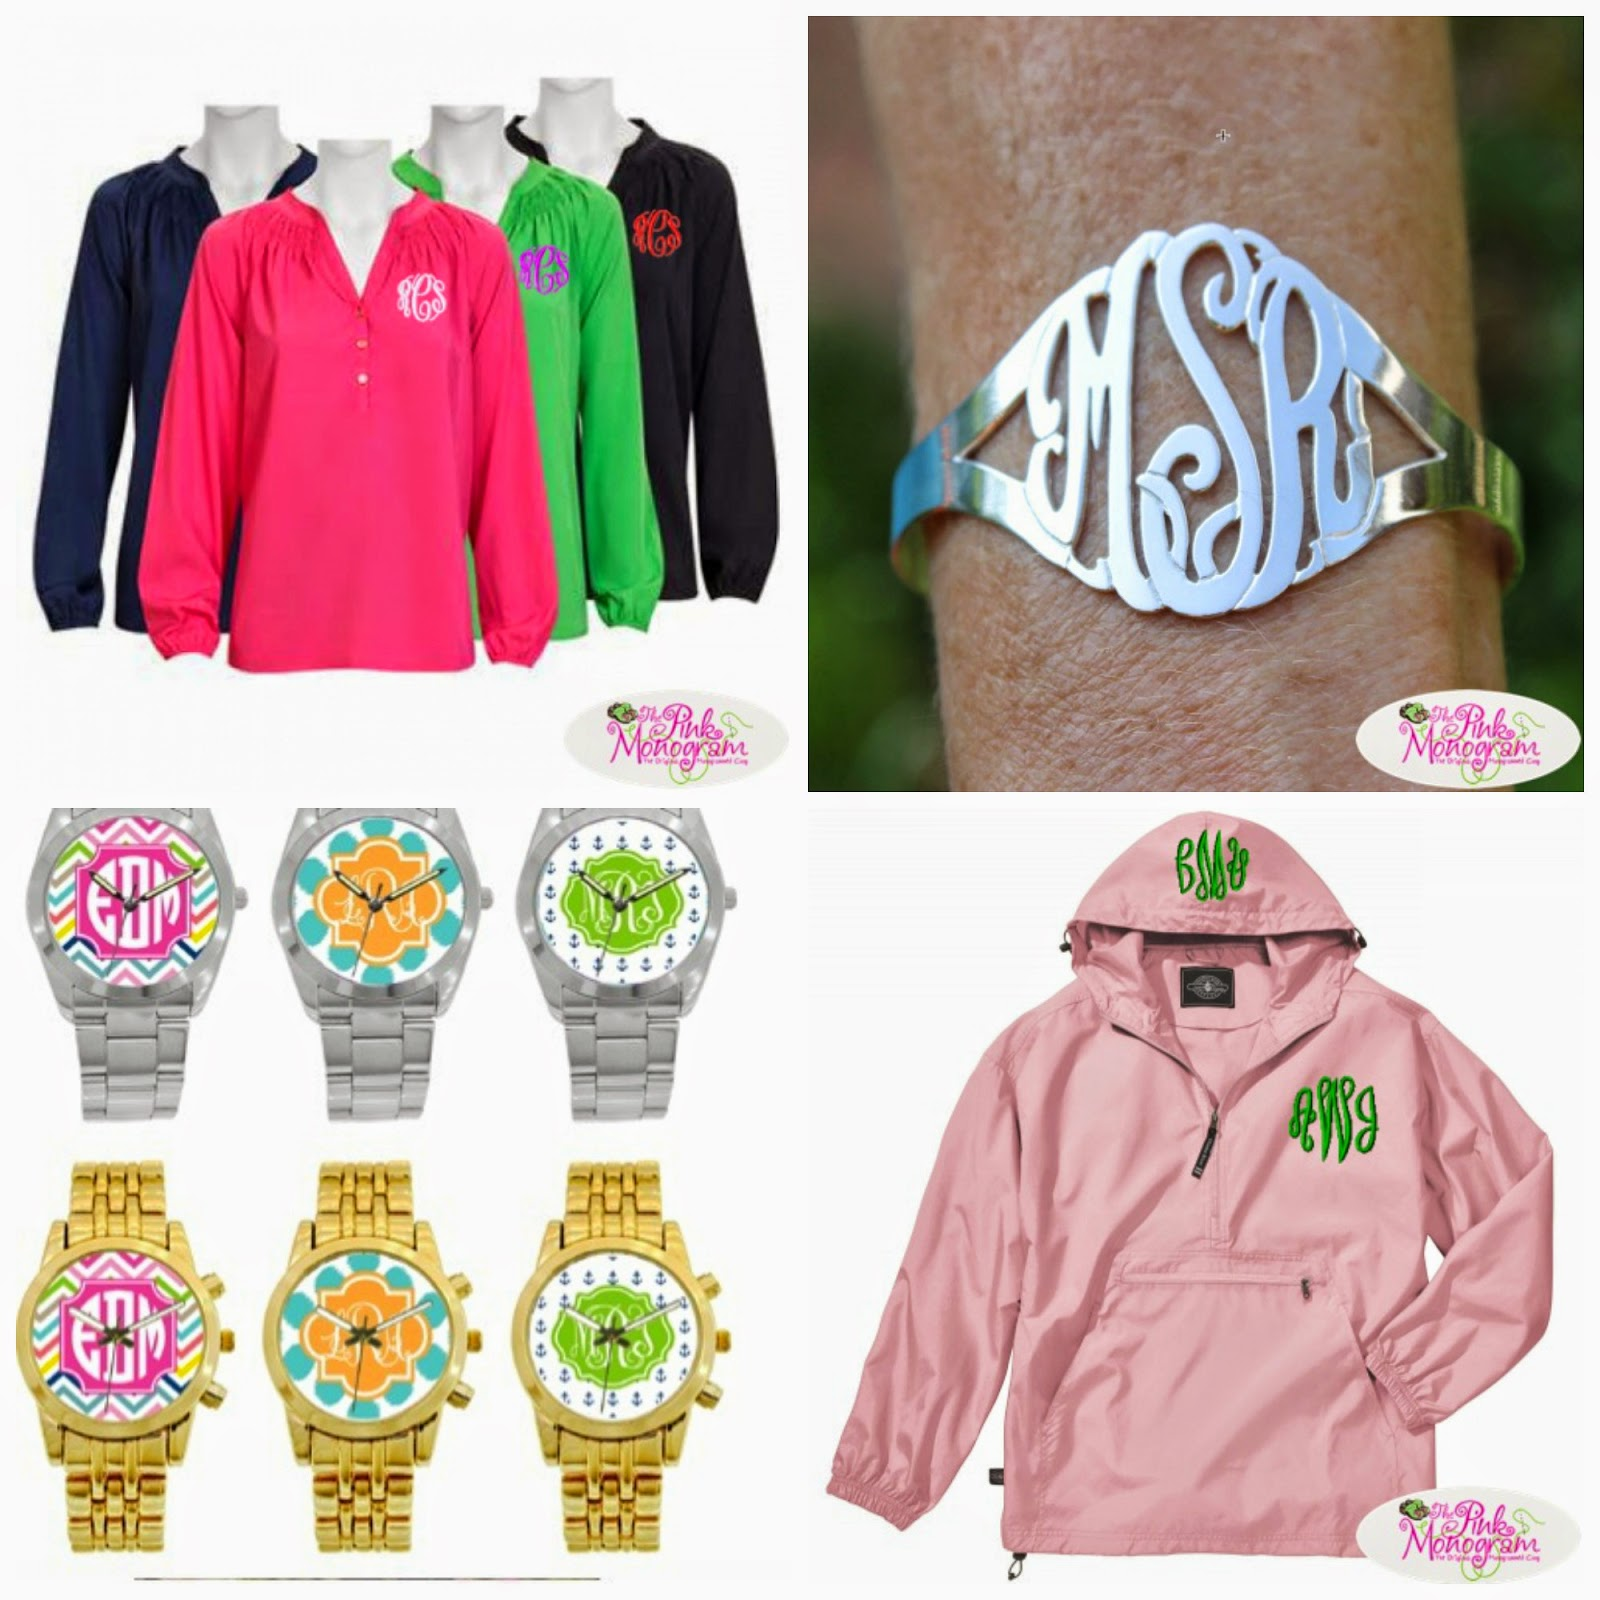 personalized gifts at the pink monogram monogrammed